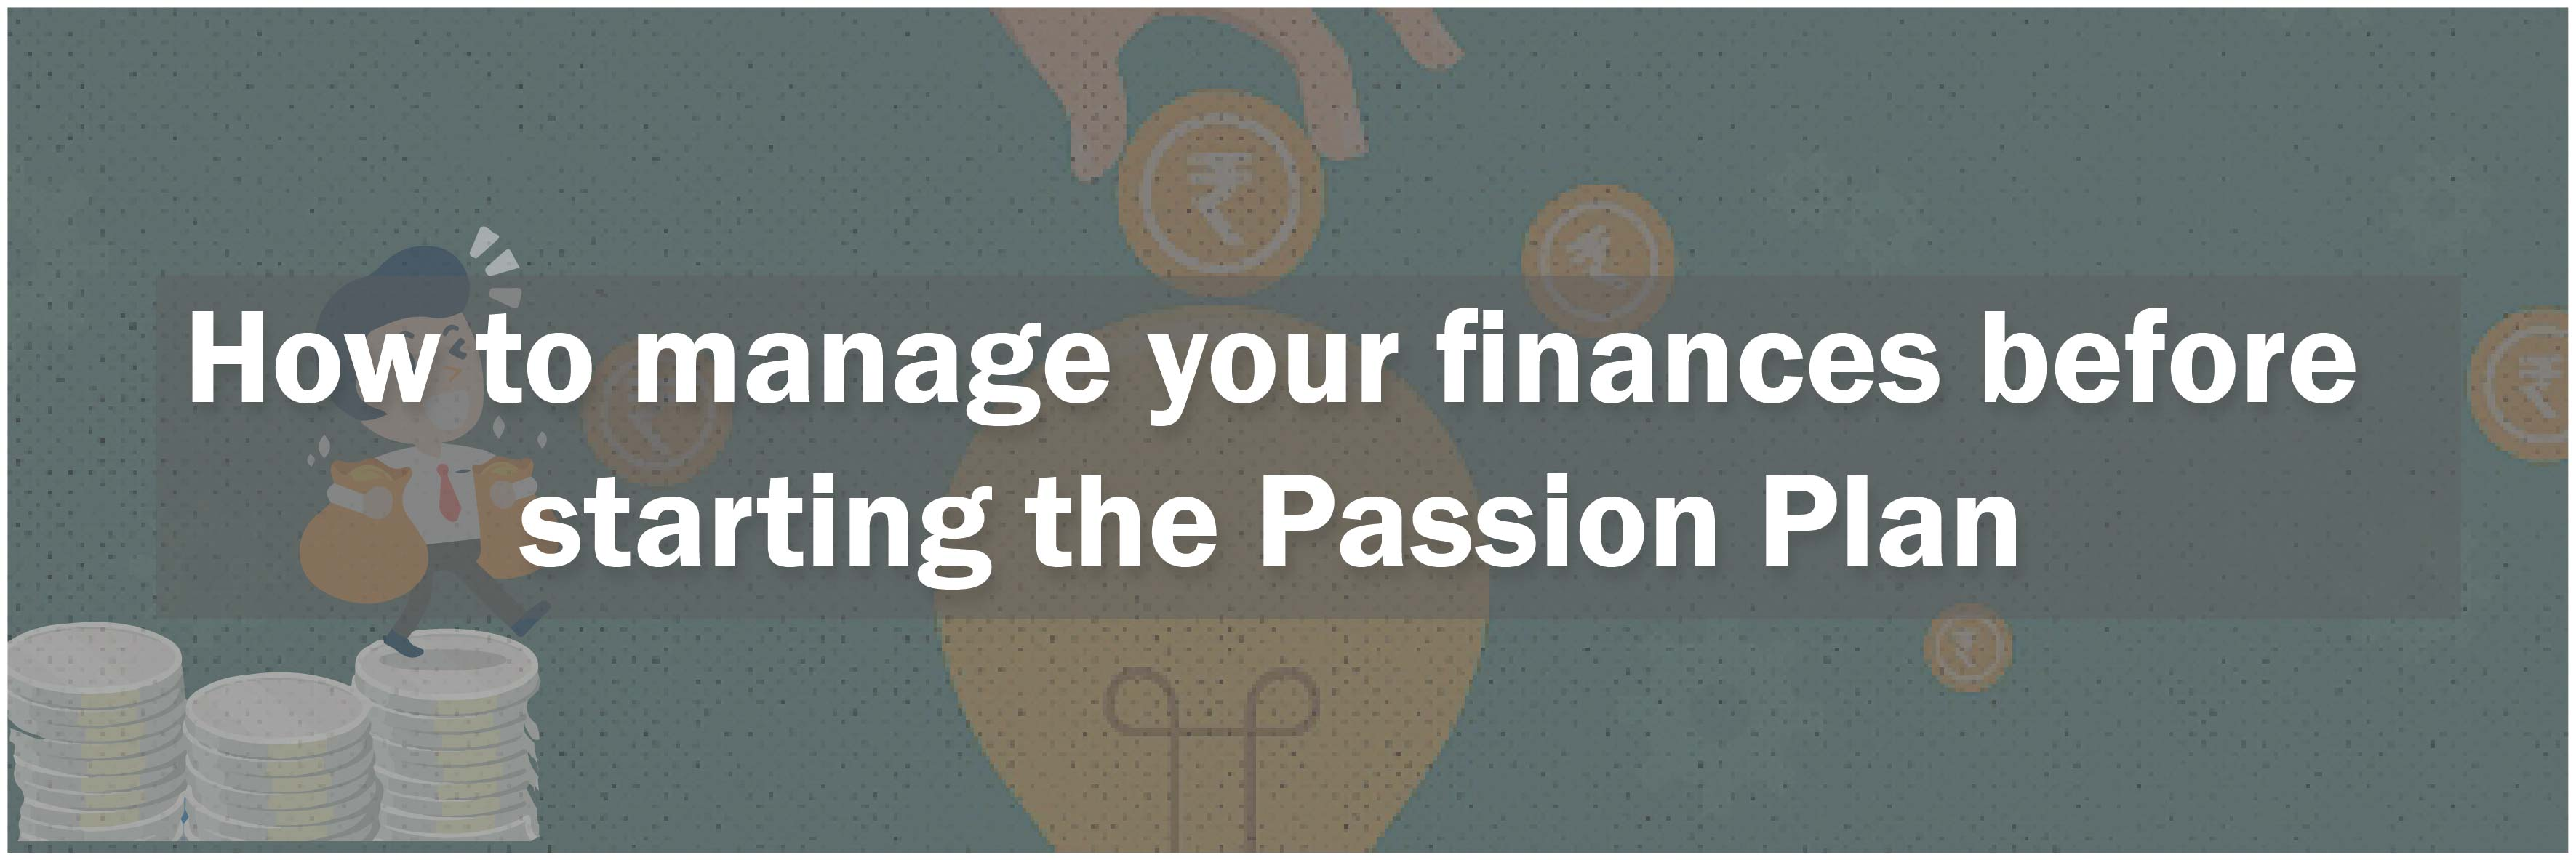 How to manage your finances before starting the Passion Plan